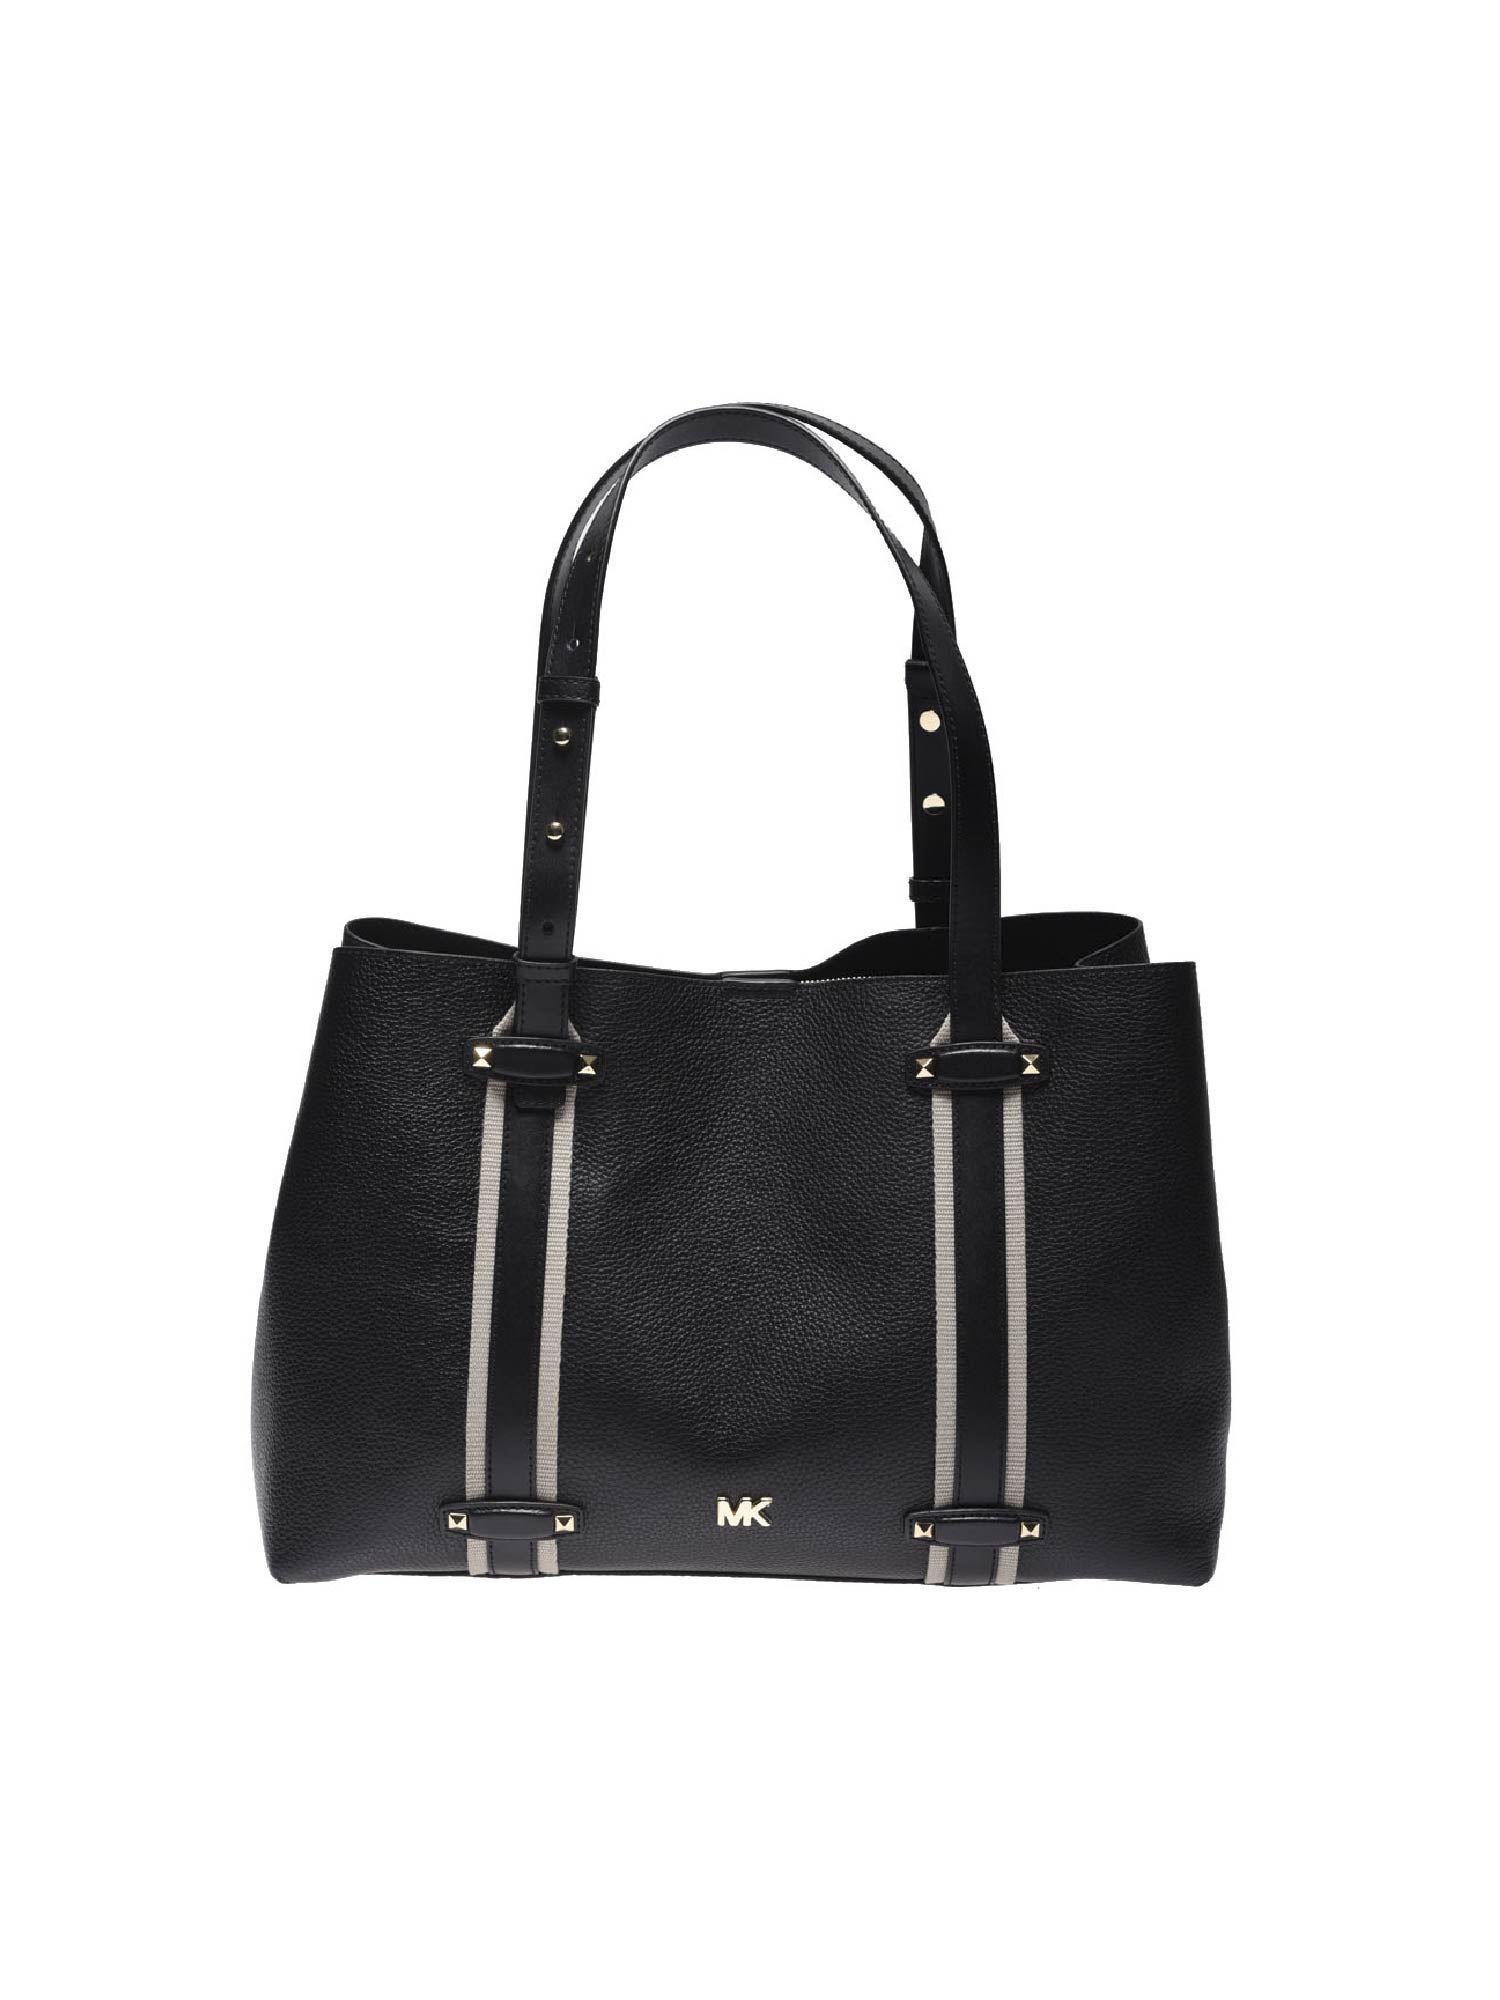 df37e6a6013 Lyst - Michael Kors Black